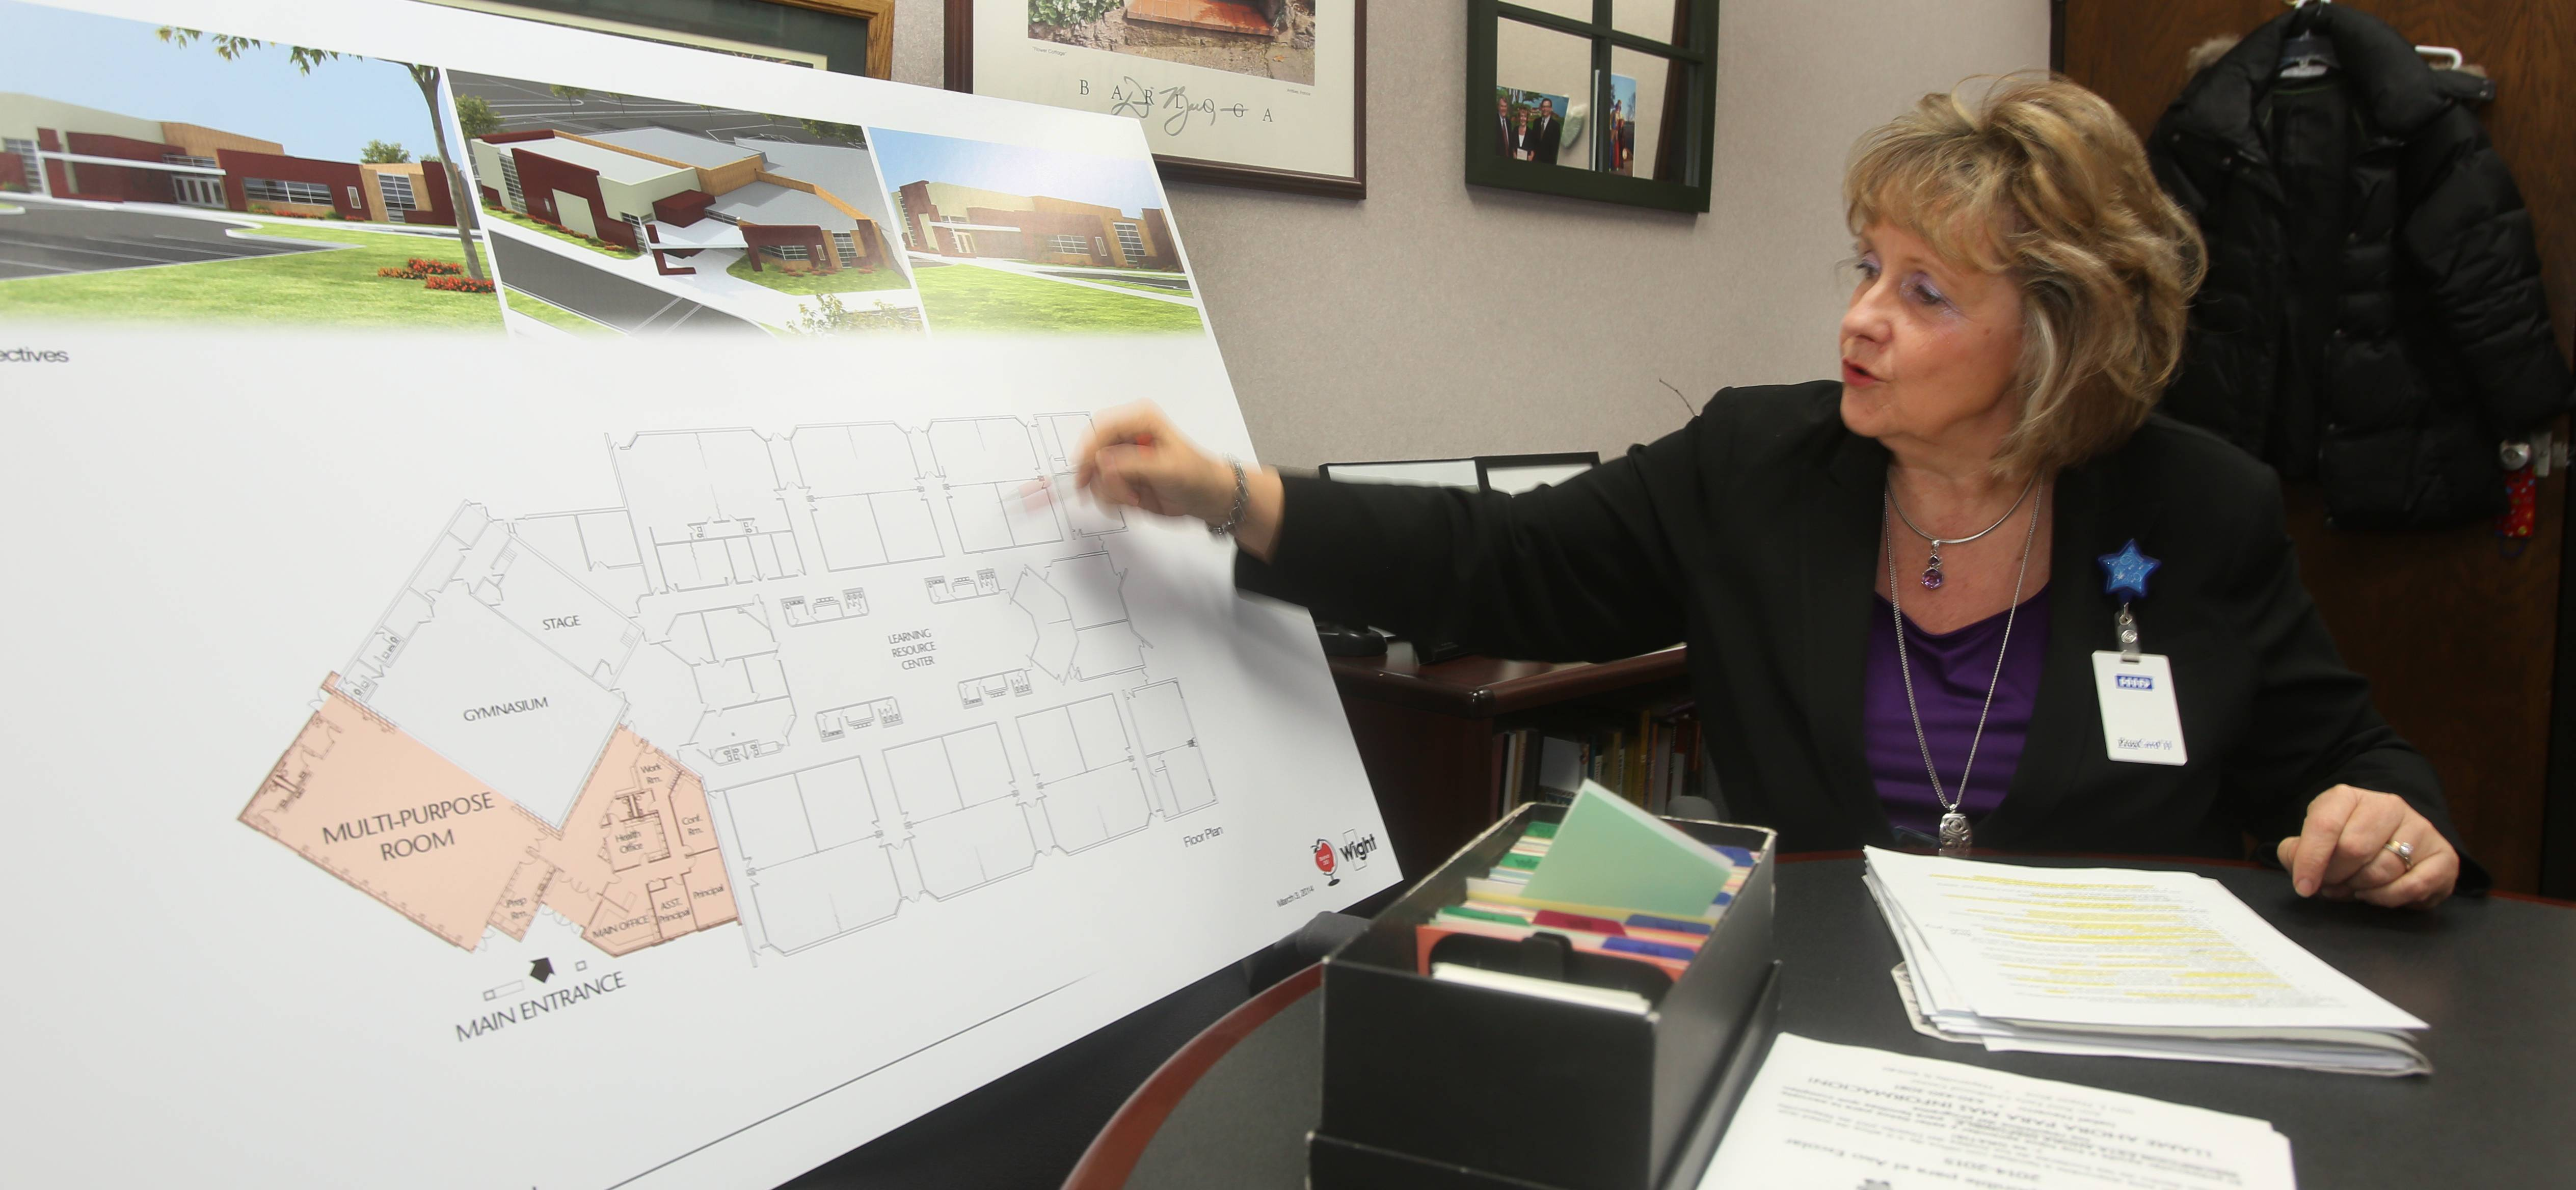 Karen Currier, principal of Steeple Run Elementary in Naperville Unit District 203, says a $2.7 million addition soon to built will give the school more flexible learning spaces for small group instruction. The construction project will add a new multipurpose room, entrance area and offices.